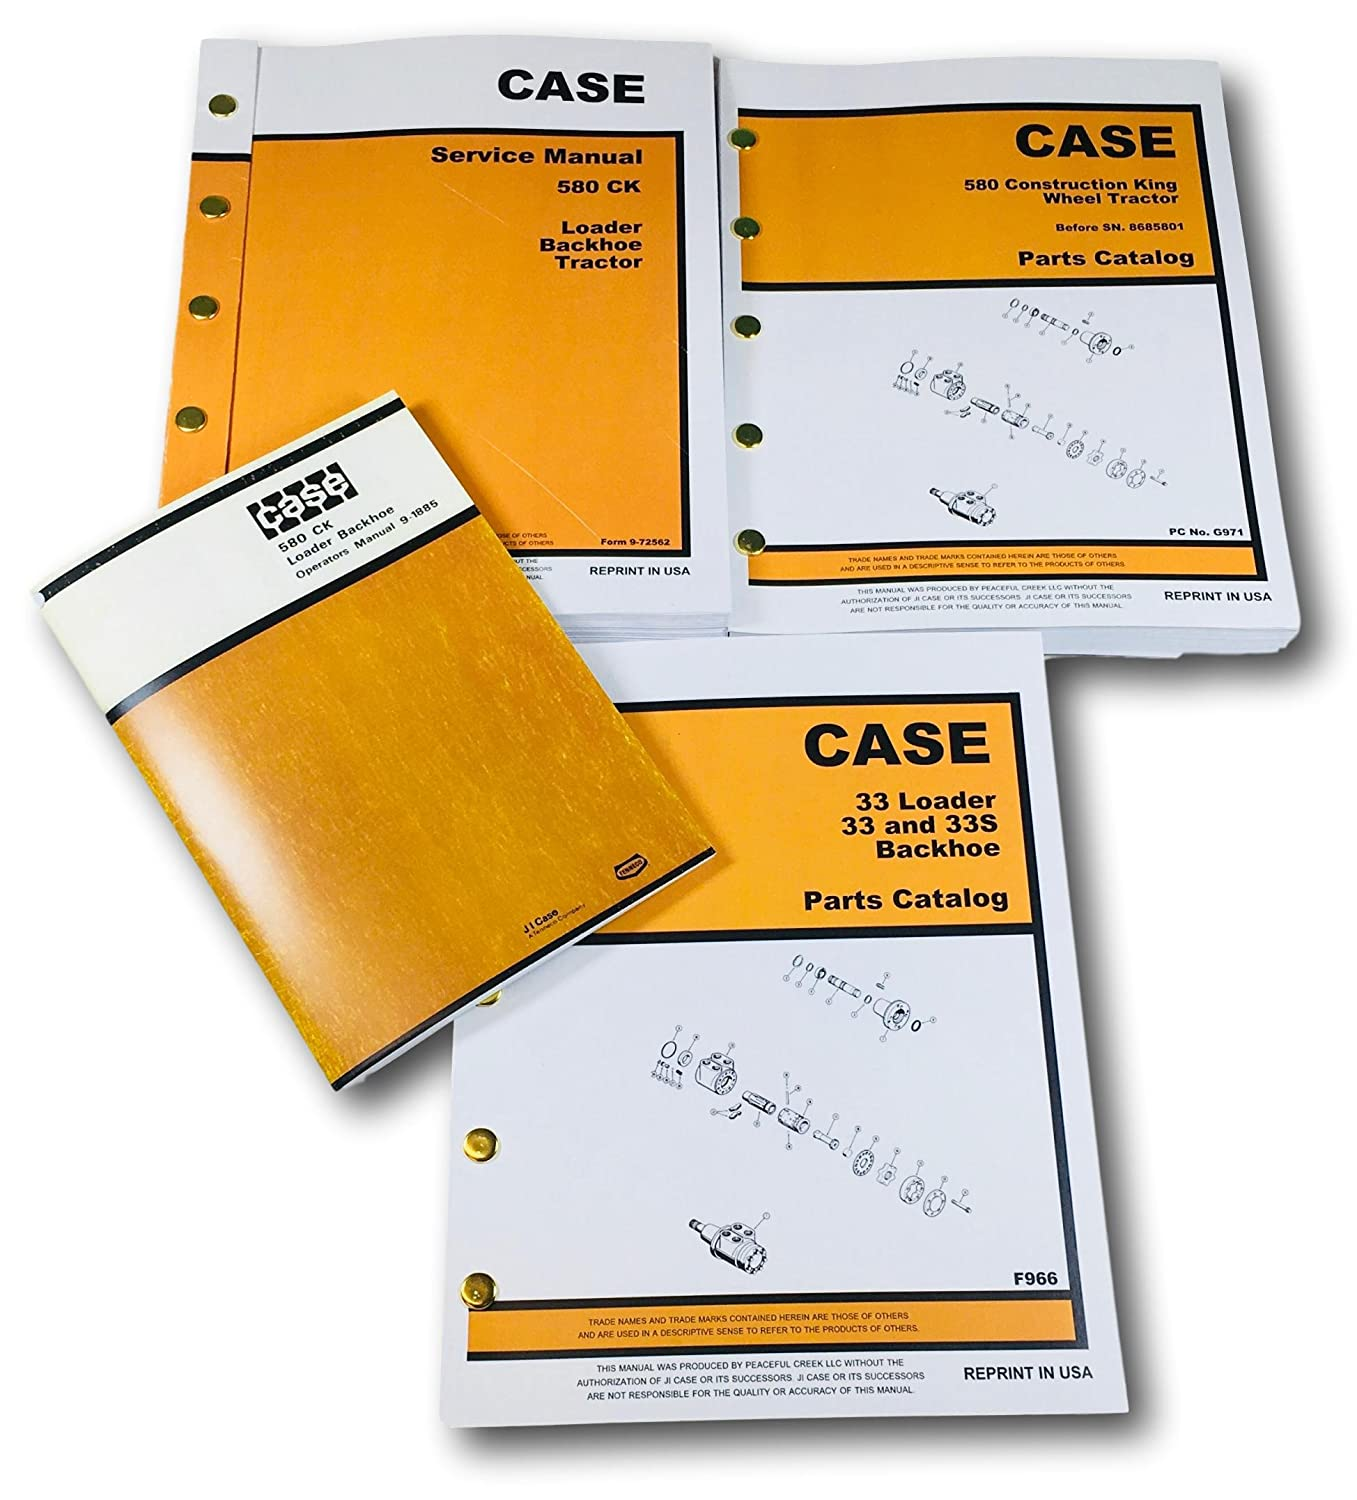 Amazon.com: Case 580 CK Tractor Loader Backhoe Service, Parts and Operators  Manual Set Serial Numbers up to 8685801 1966 through 1971: Industrial & ...